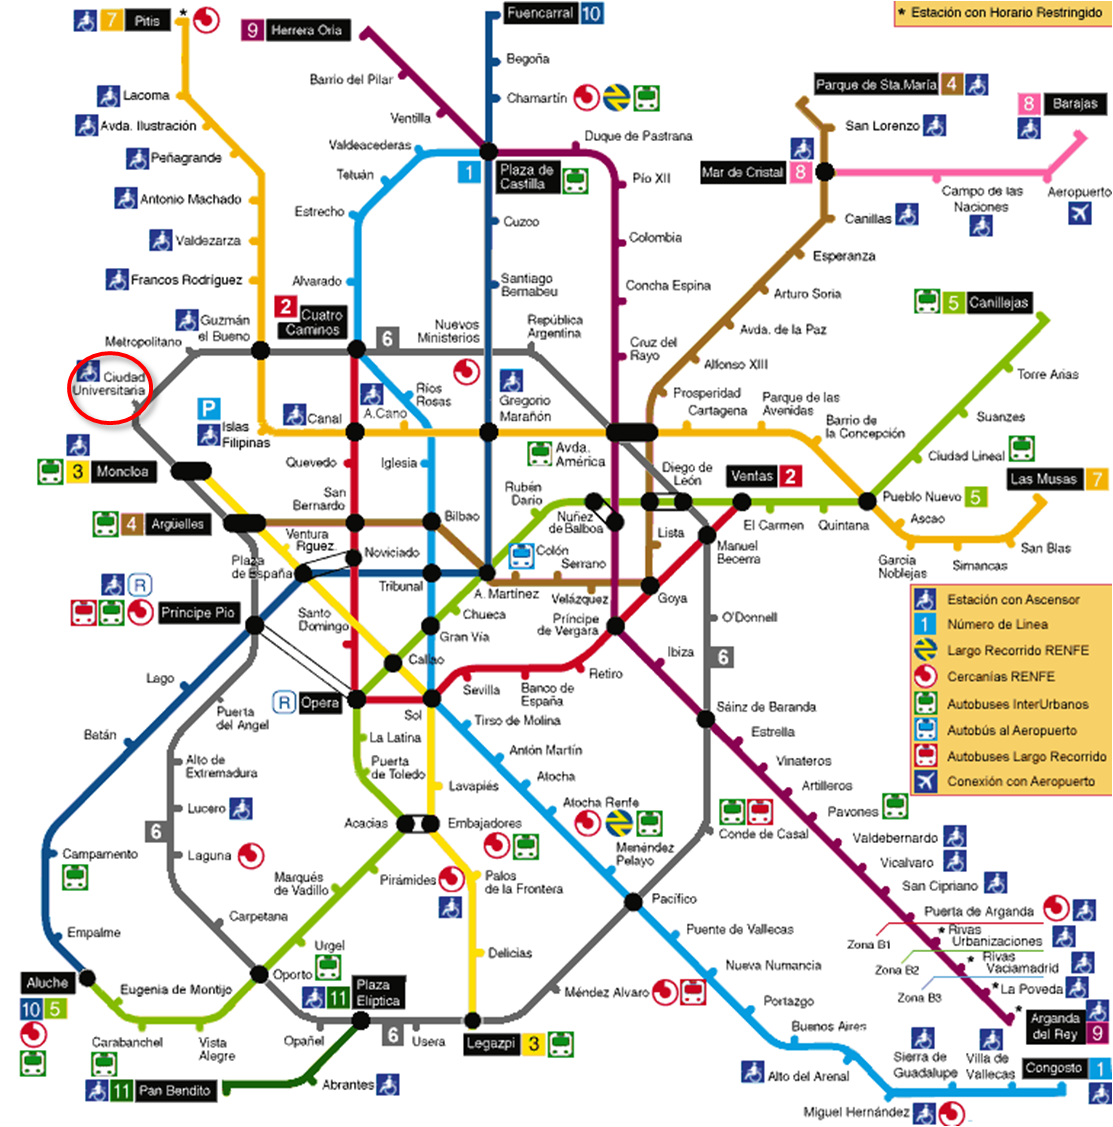 Subway Map Of Madrid Spain.Lmbw 2010